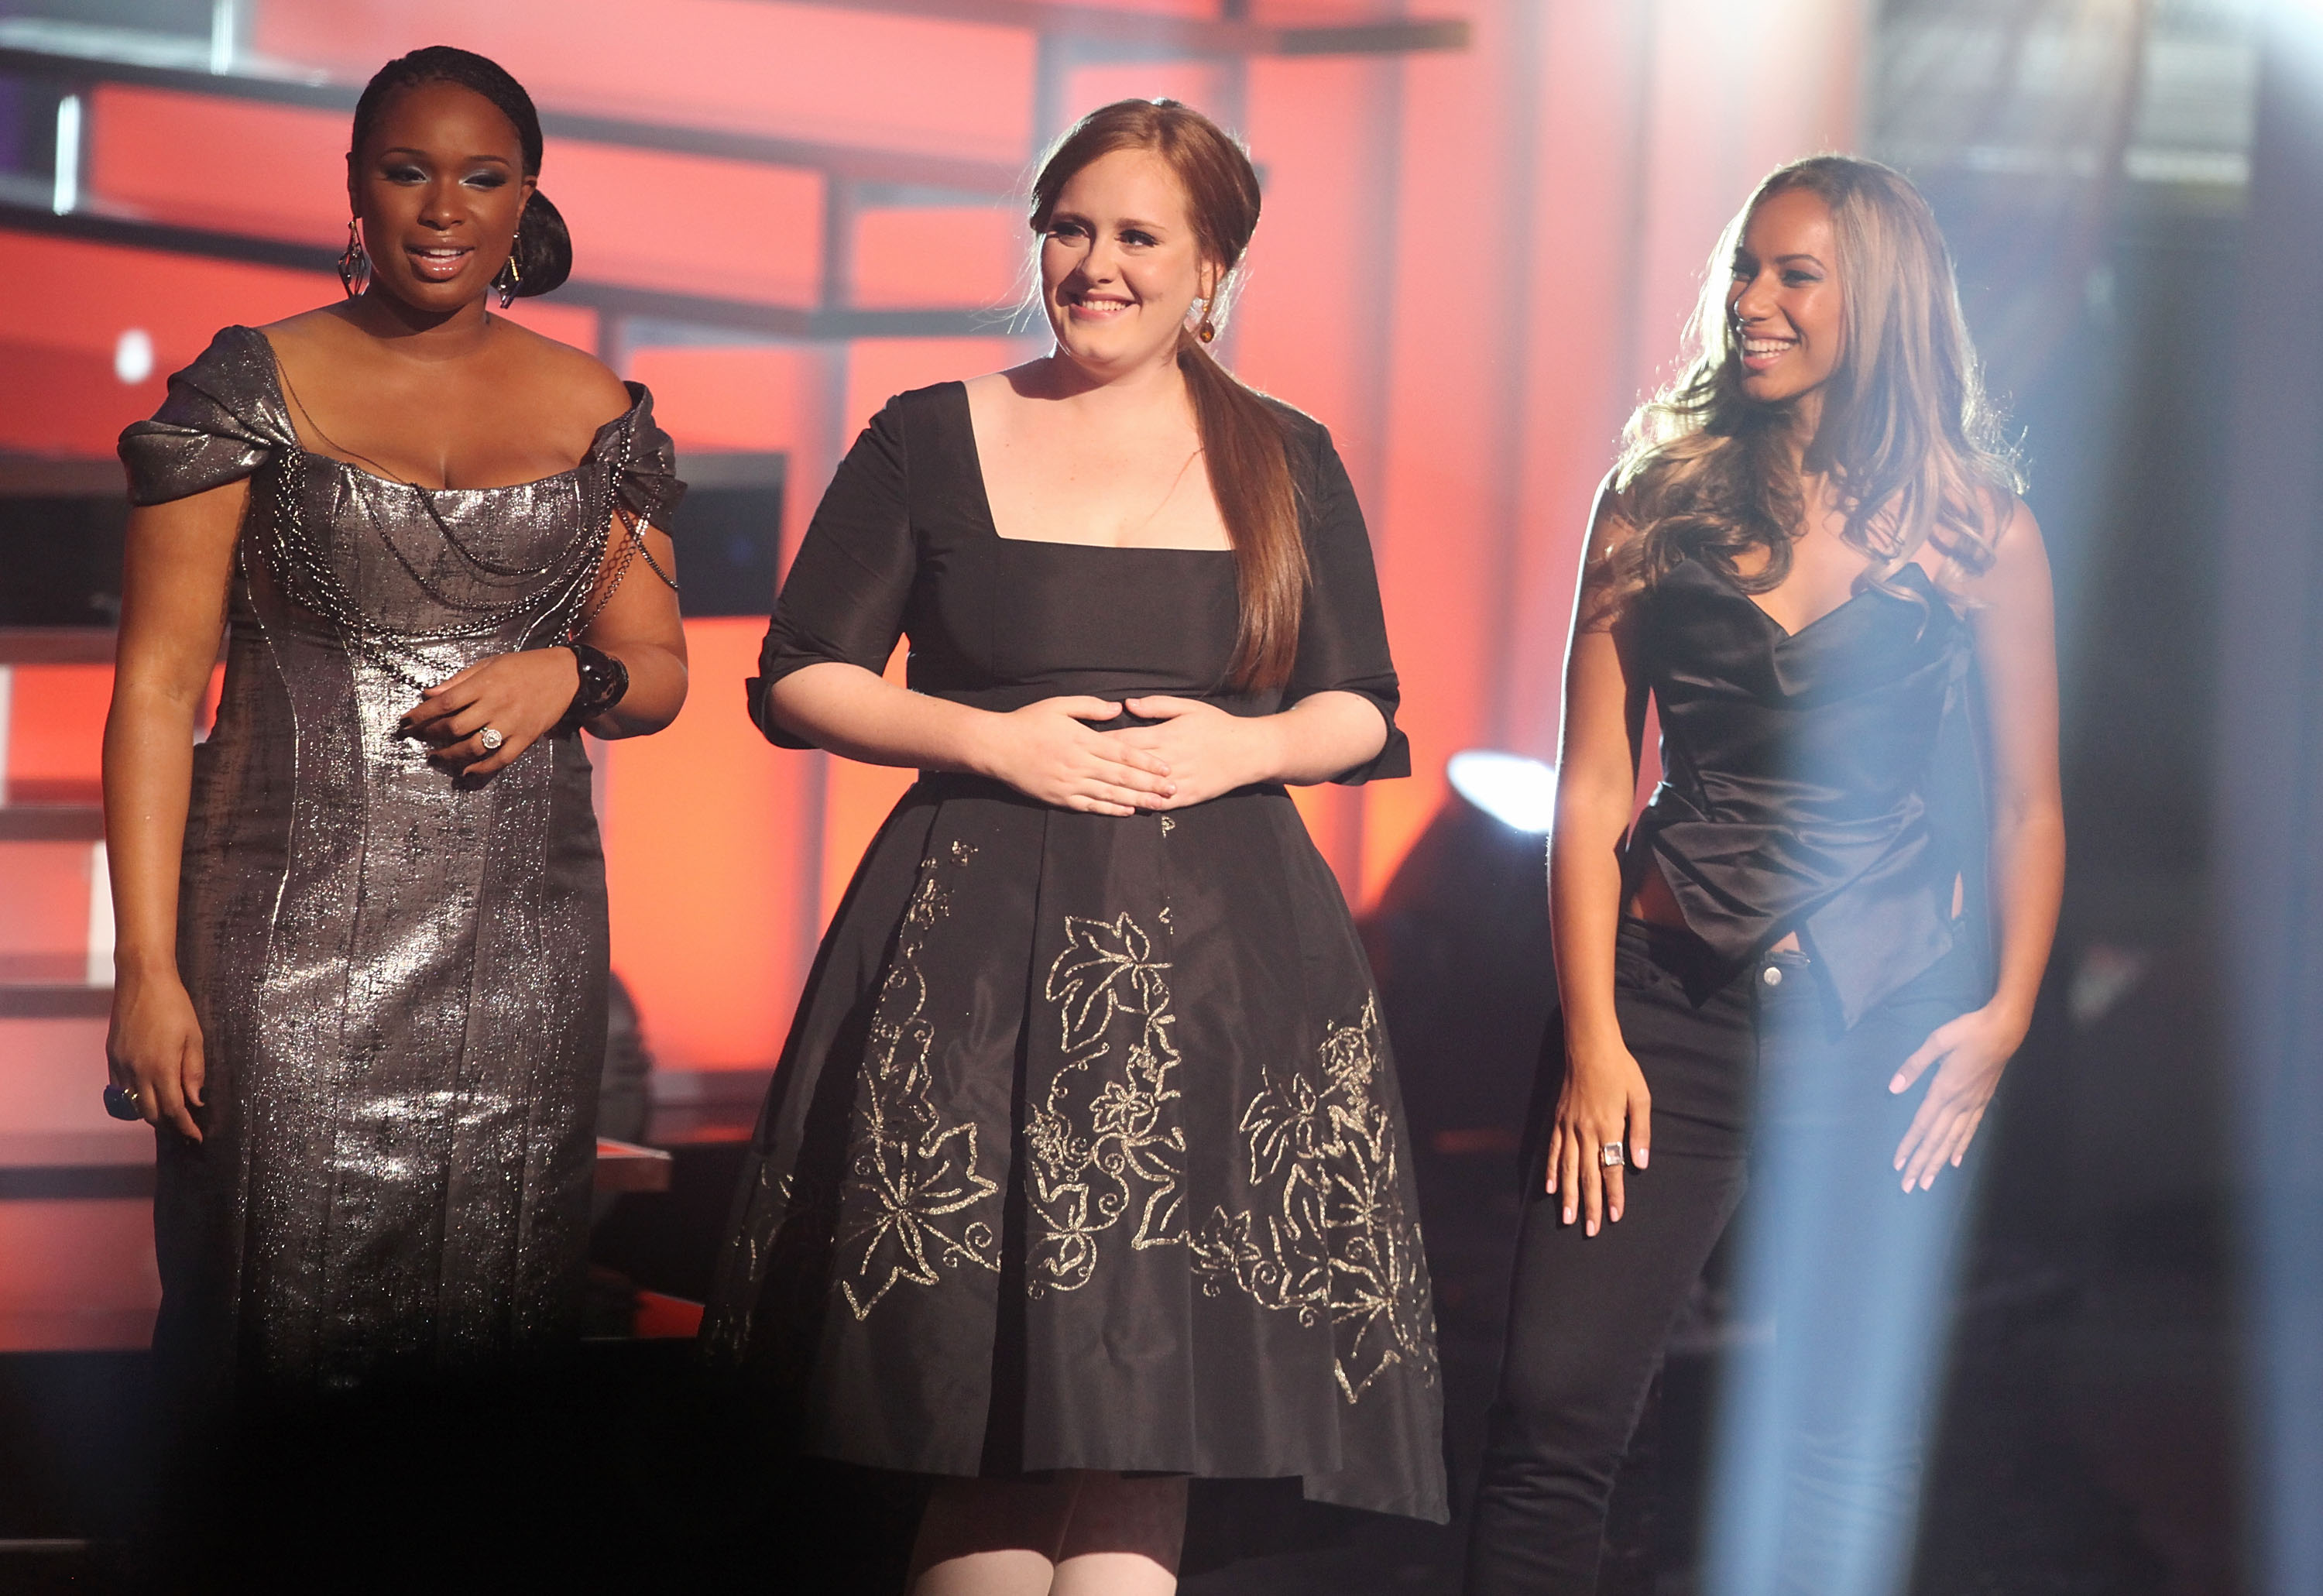 Jennifer Hudson, Adele, and Leona Lewis pose onstage during the 2009 VH1 Divas at Brooklyn Academy of Music in New York City on Sept. 17, 2009.